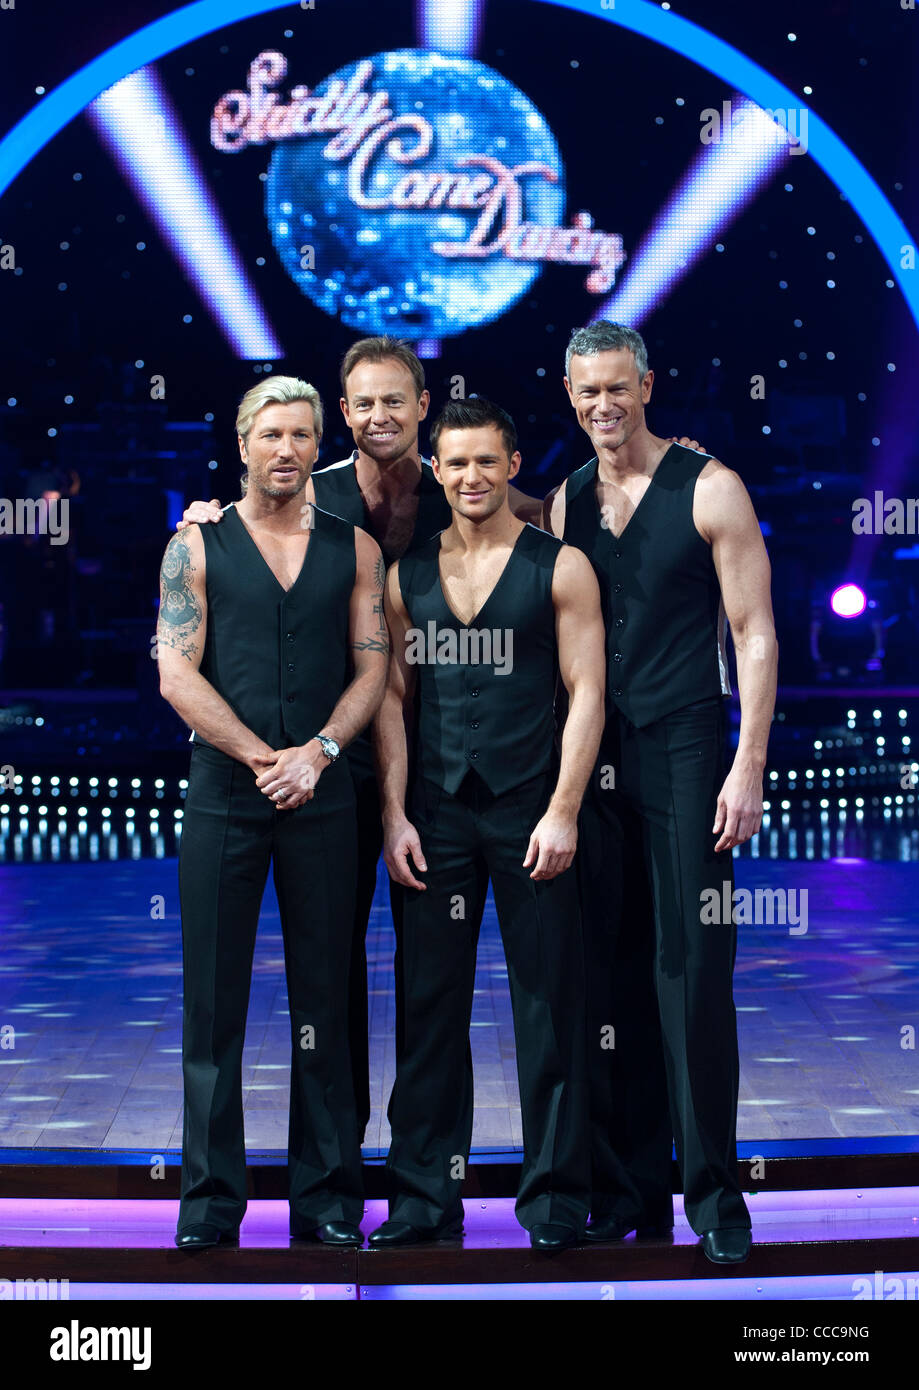 Robbie Savage, Jason Donavon, Harry Judd and Mark Foster at the Strictly Come Dancing photo shoot at the national - Stock Image